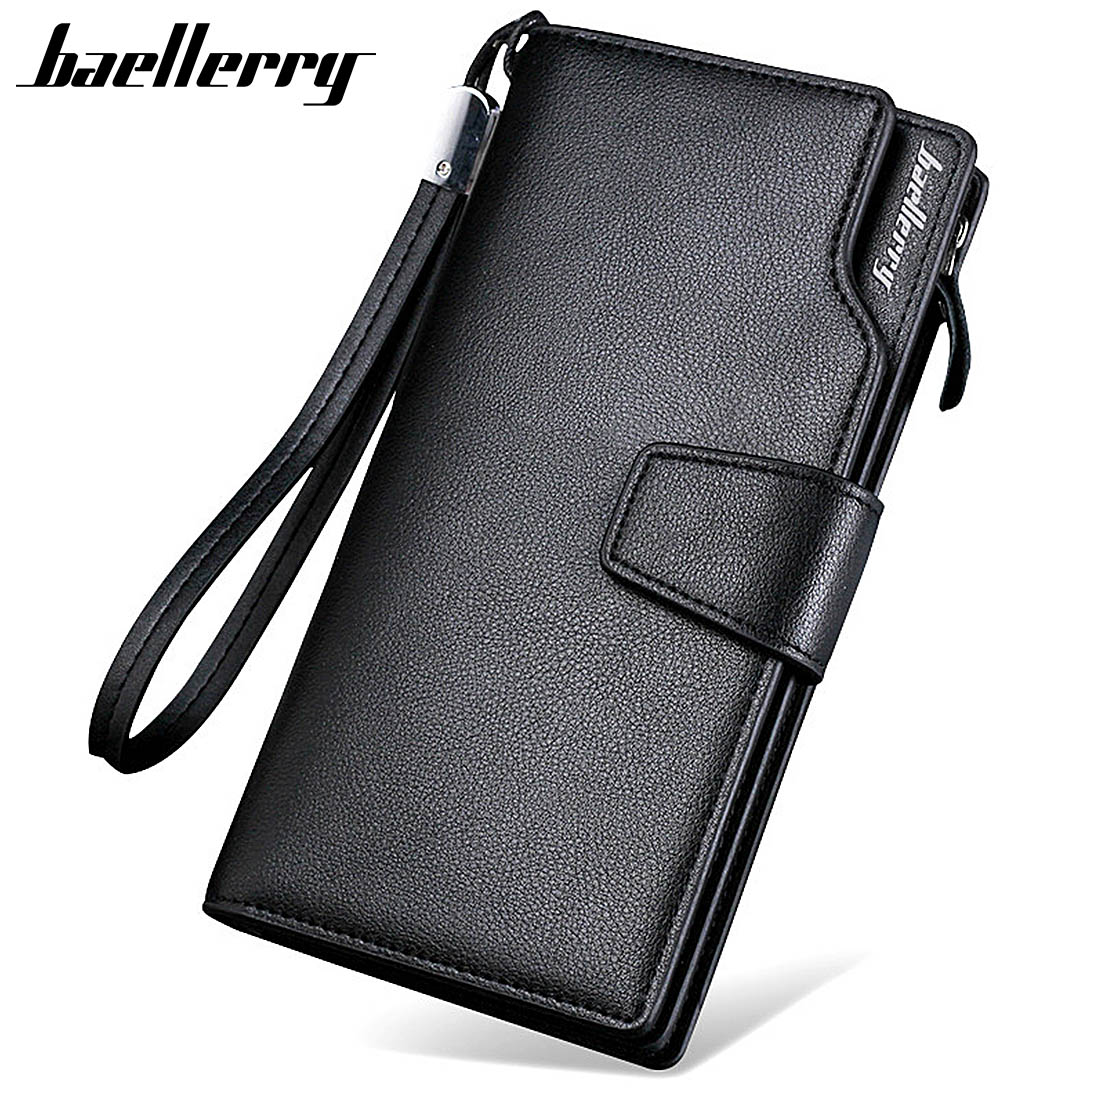 Baellerry Male Purse Wallets Card-Holder Zipper Long-Style Large-Capacity High-Quality